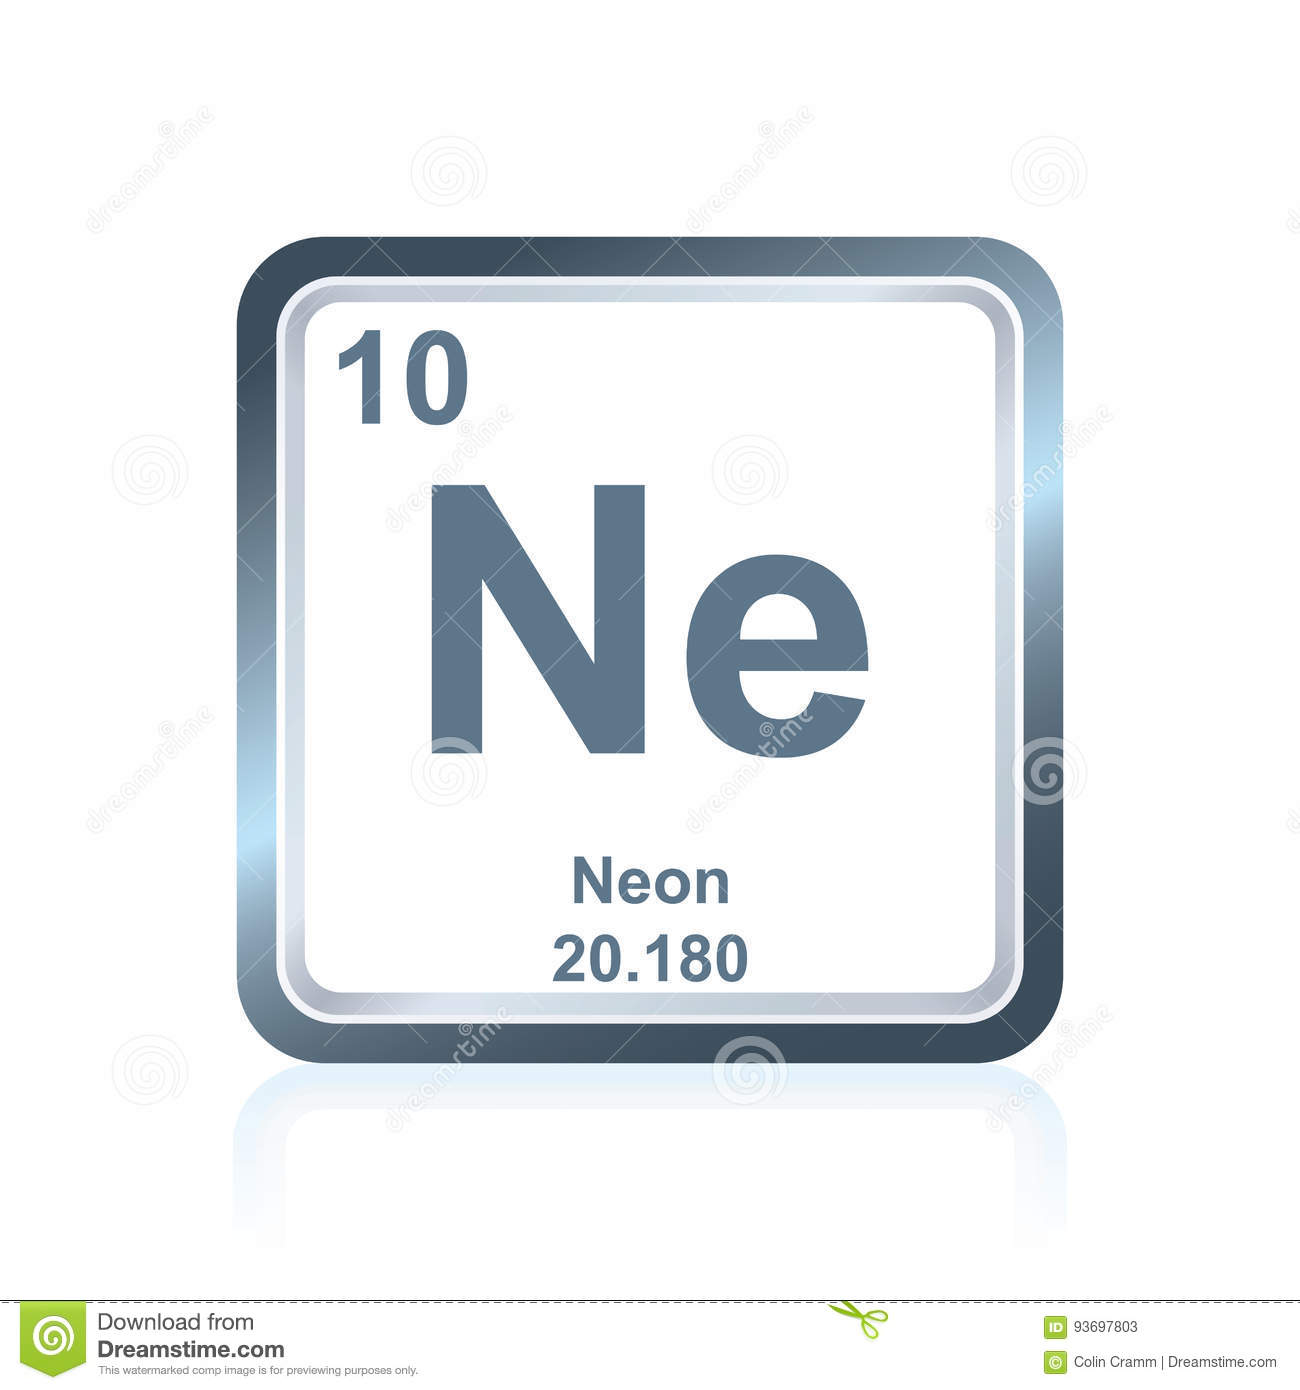 Chemical element neon from the periodic table stock vector download chemical element neon from the periodic table stock vector illustration of element numbering urtaz